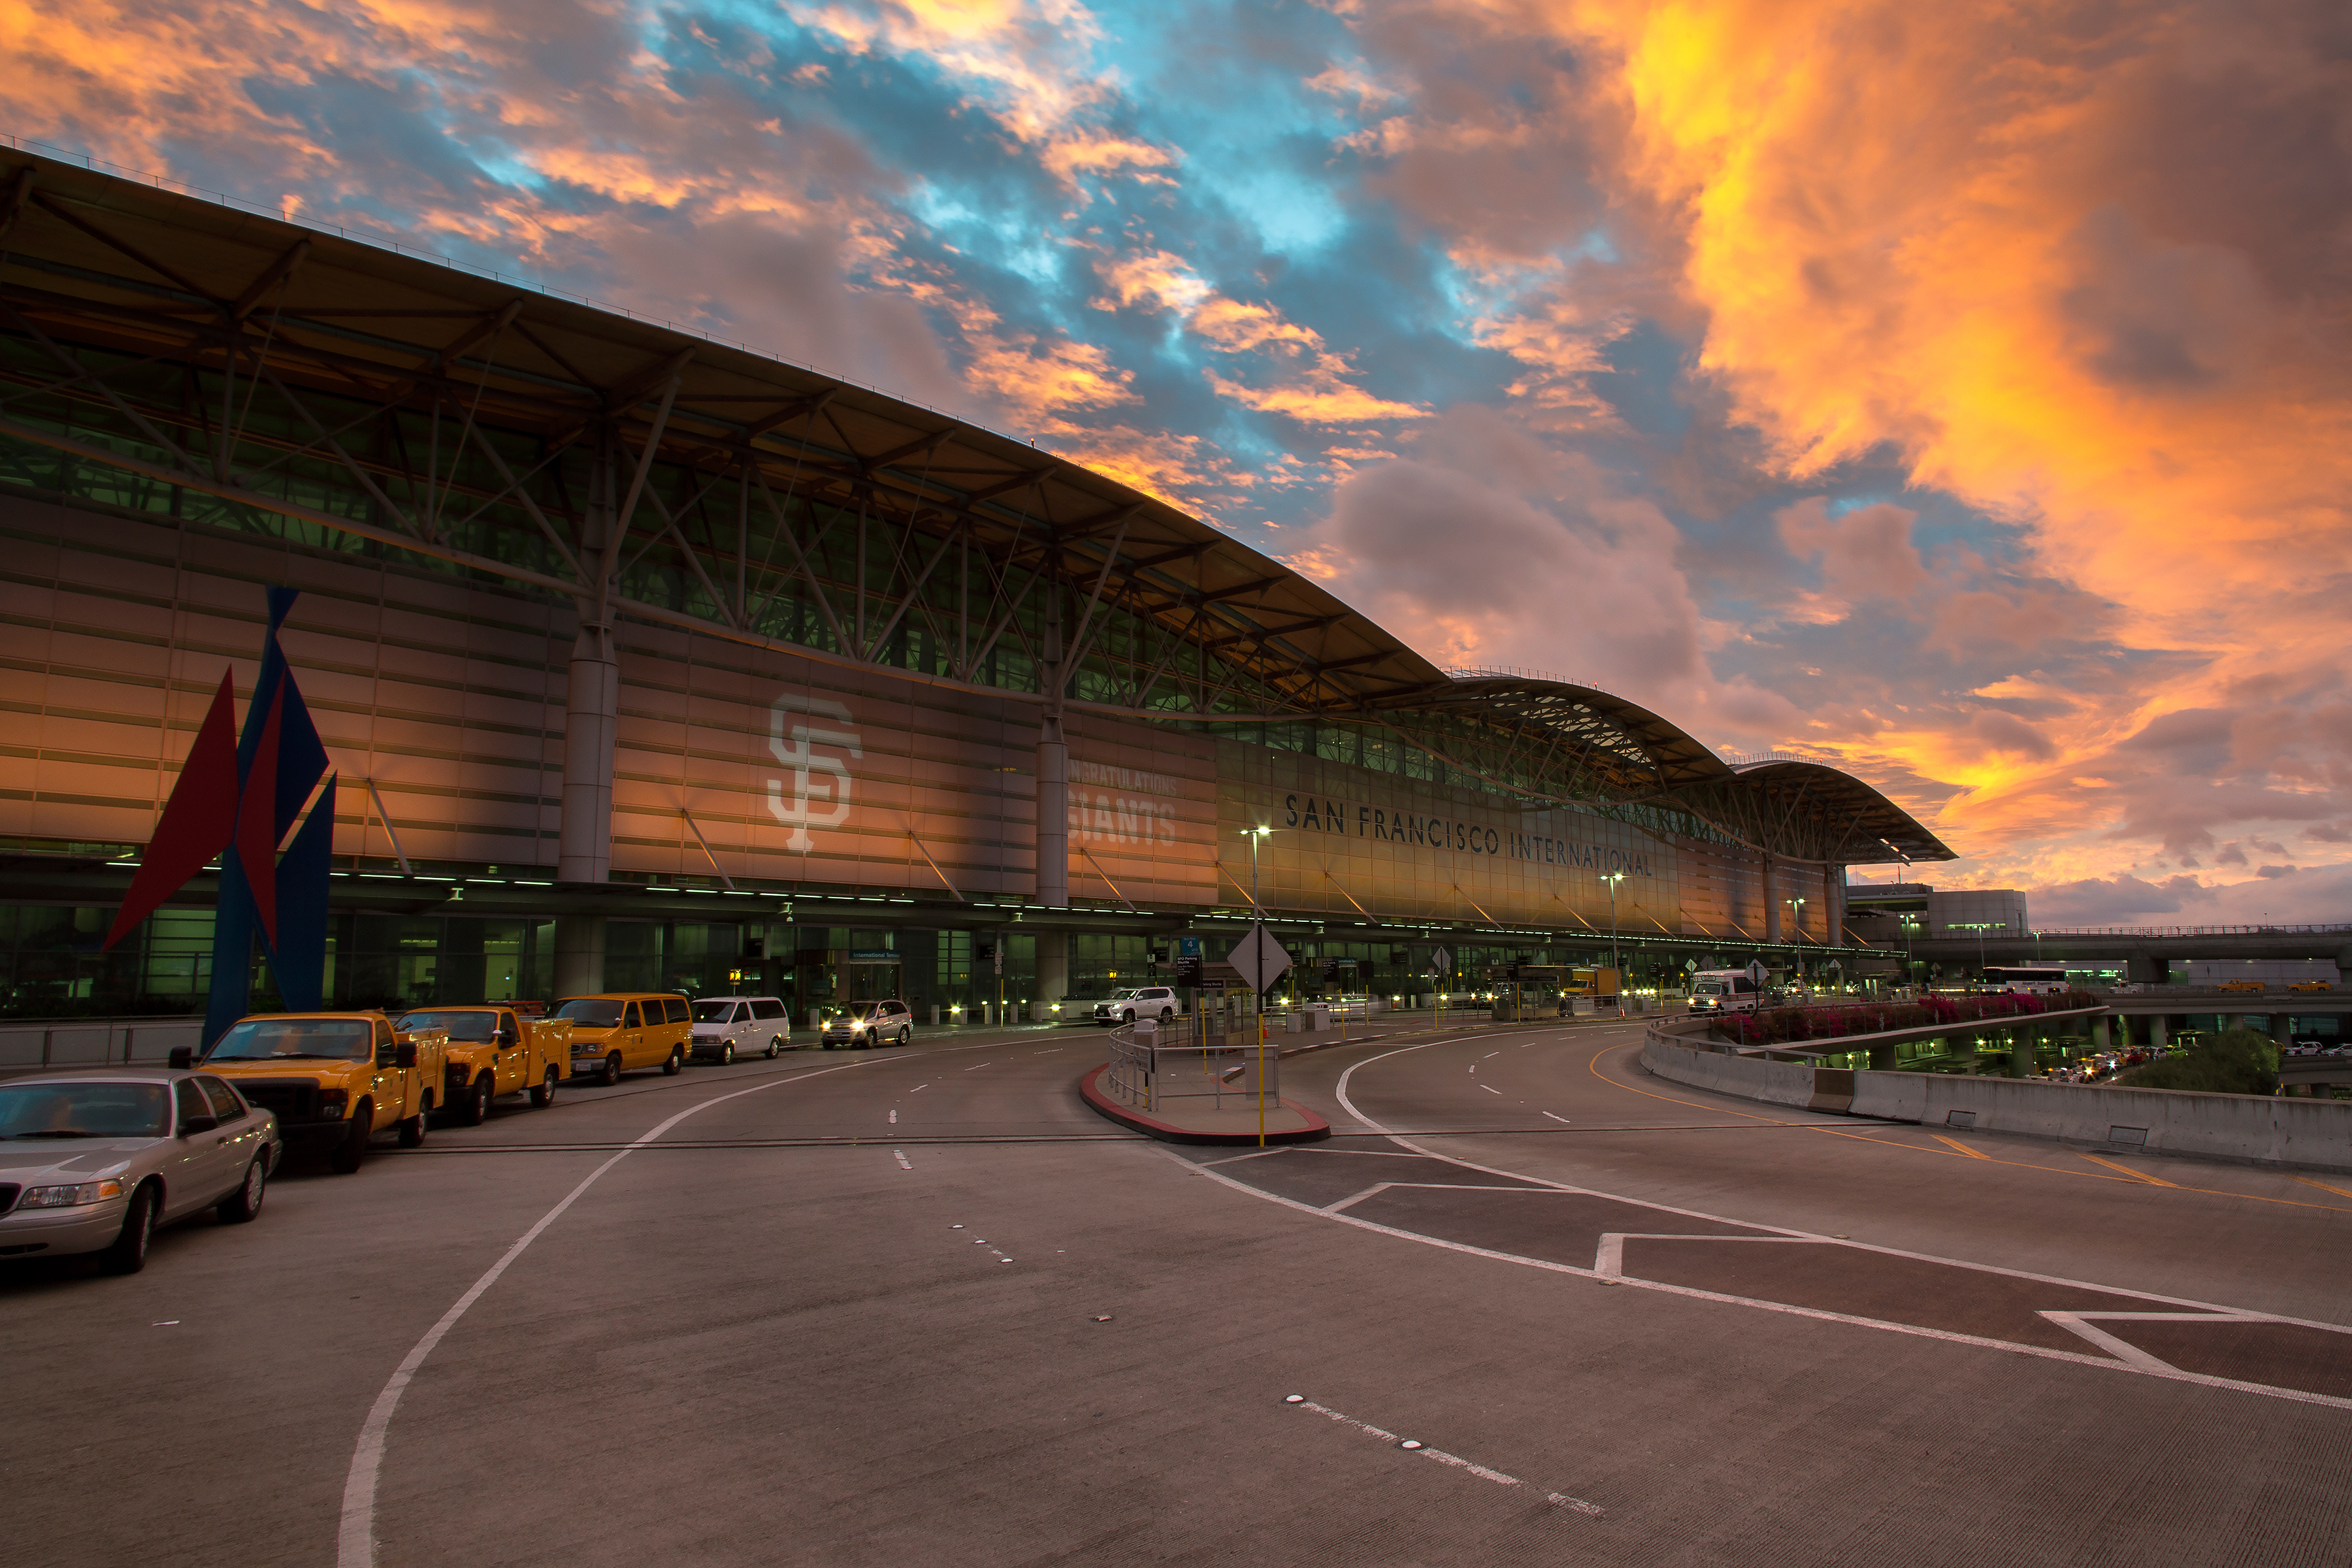 San Francisco International Airport Guide